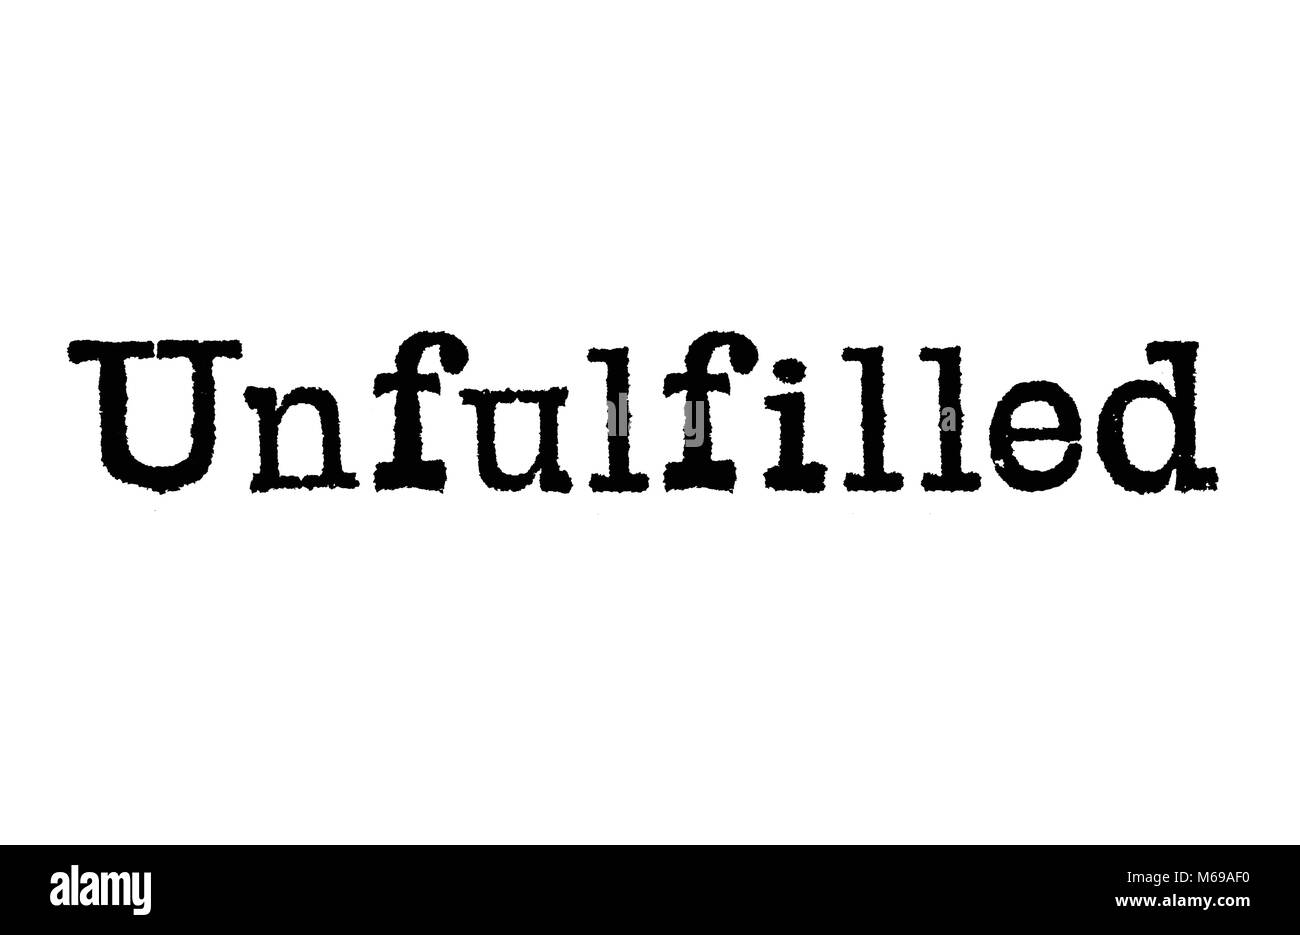 The word Unfulfilled from a typewriter on a white background - Stock Image